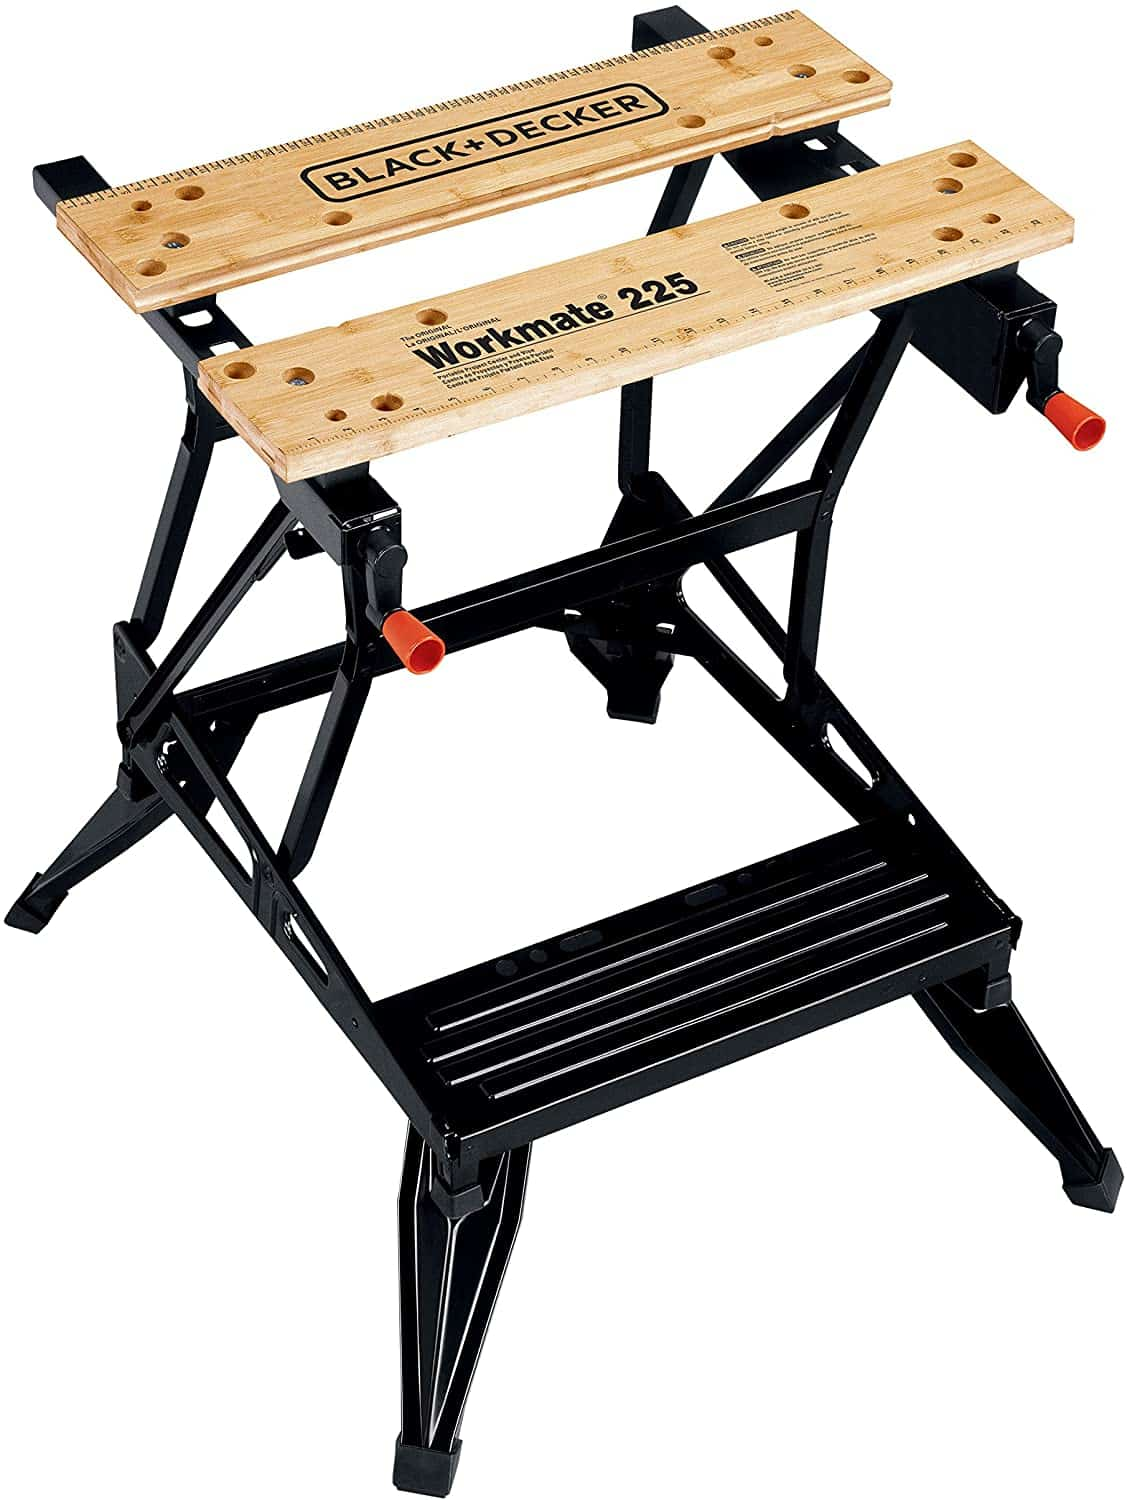 BLACK + DECKER WM225 Portable Work Table